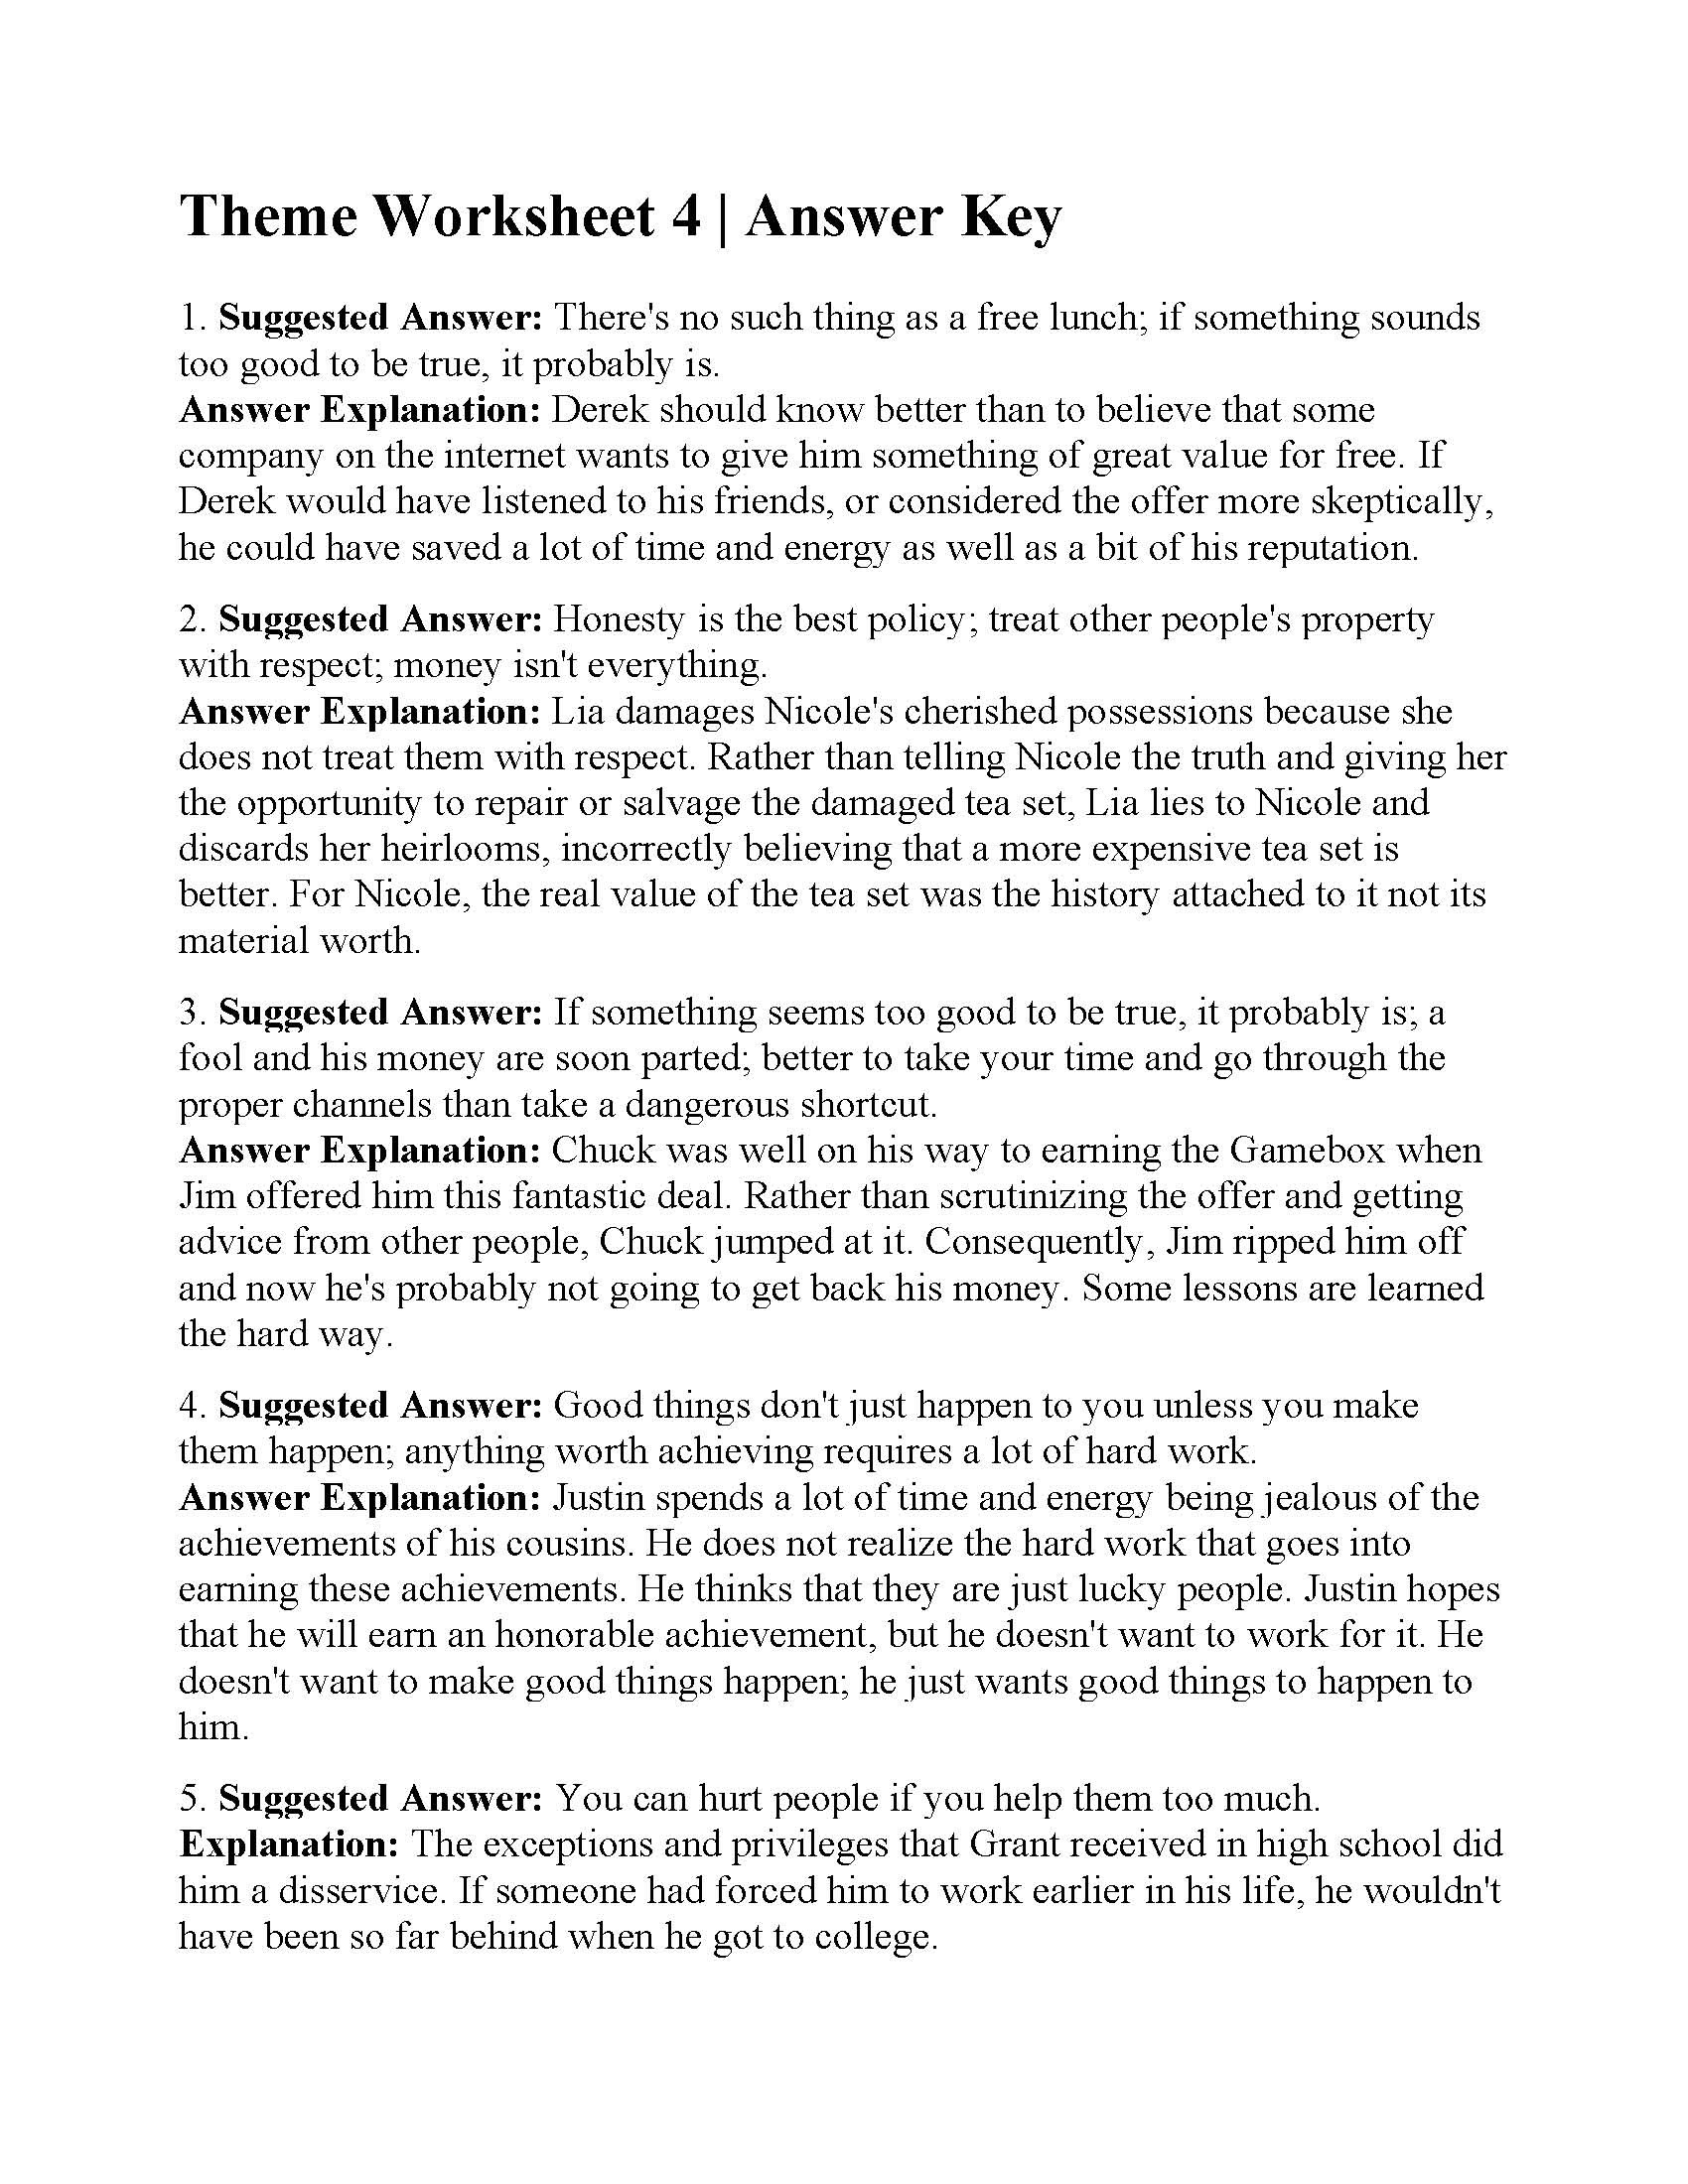 Theme Worksheets 5th Grade theme Worksheet 4